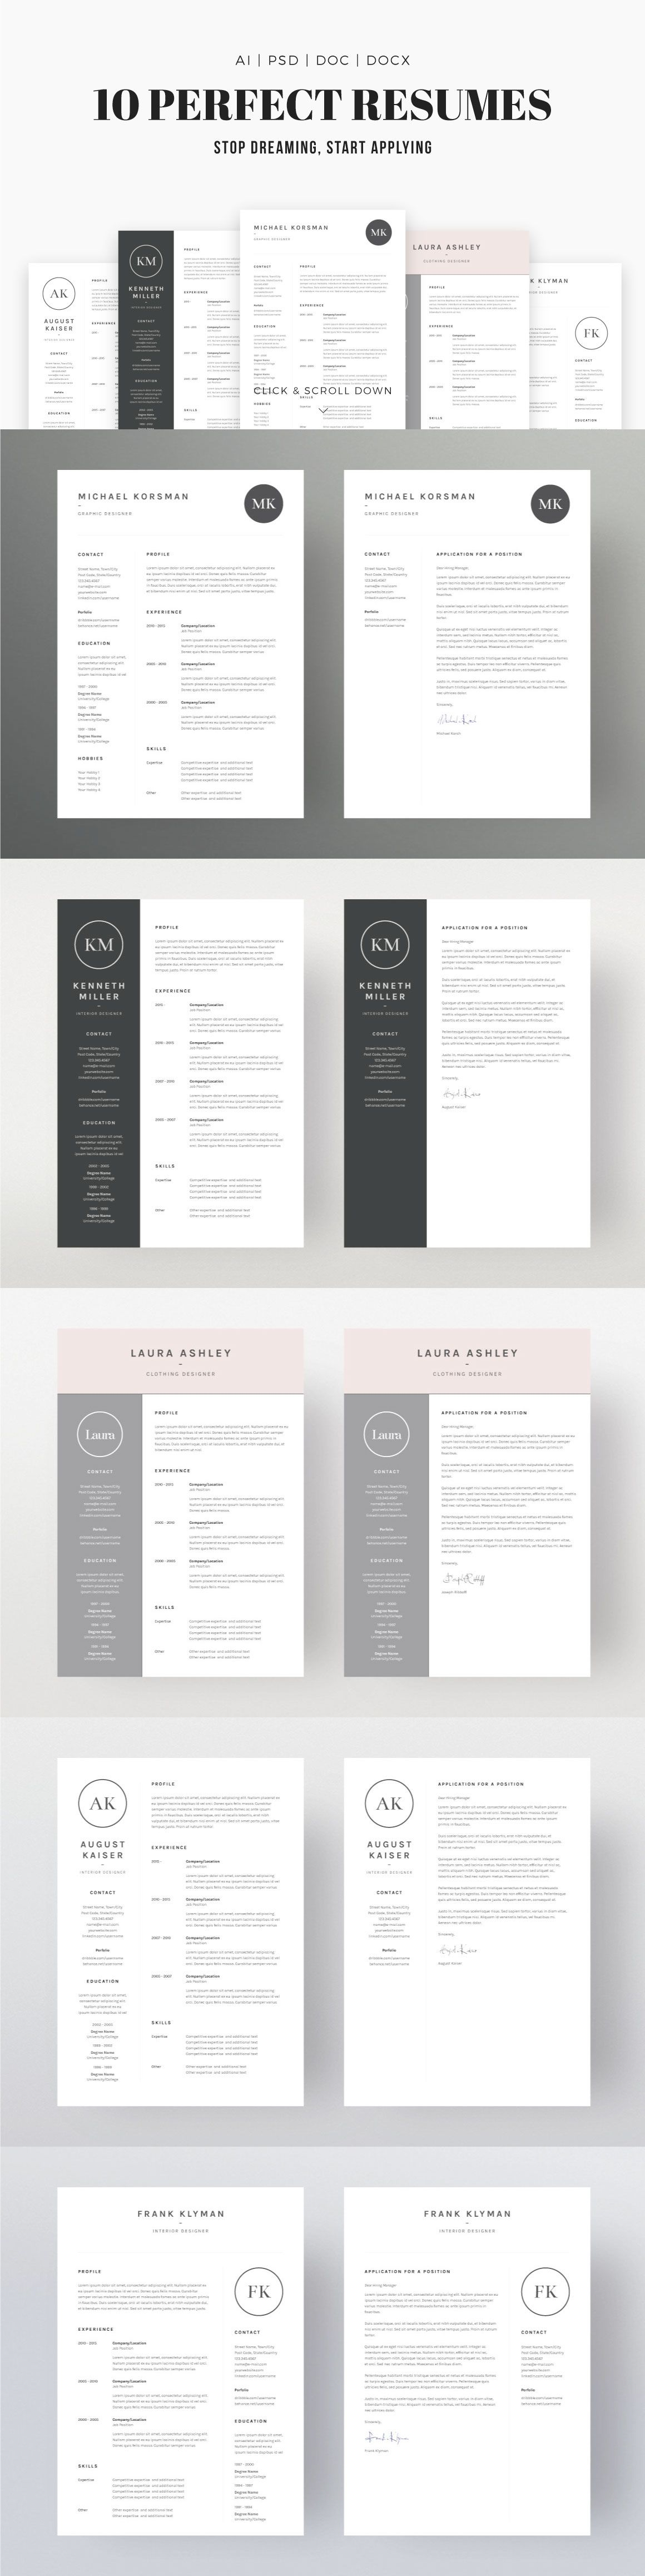 Job SeekerS Dream Bundle  Template Cv Template And Resume Ideas